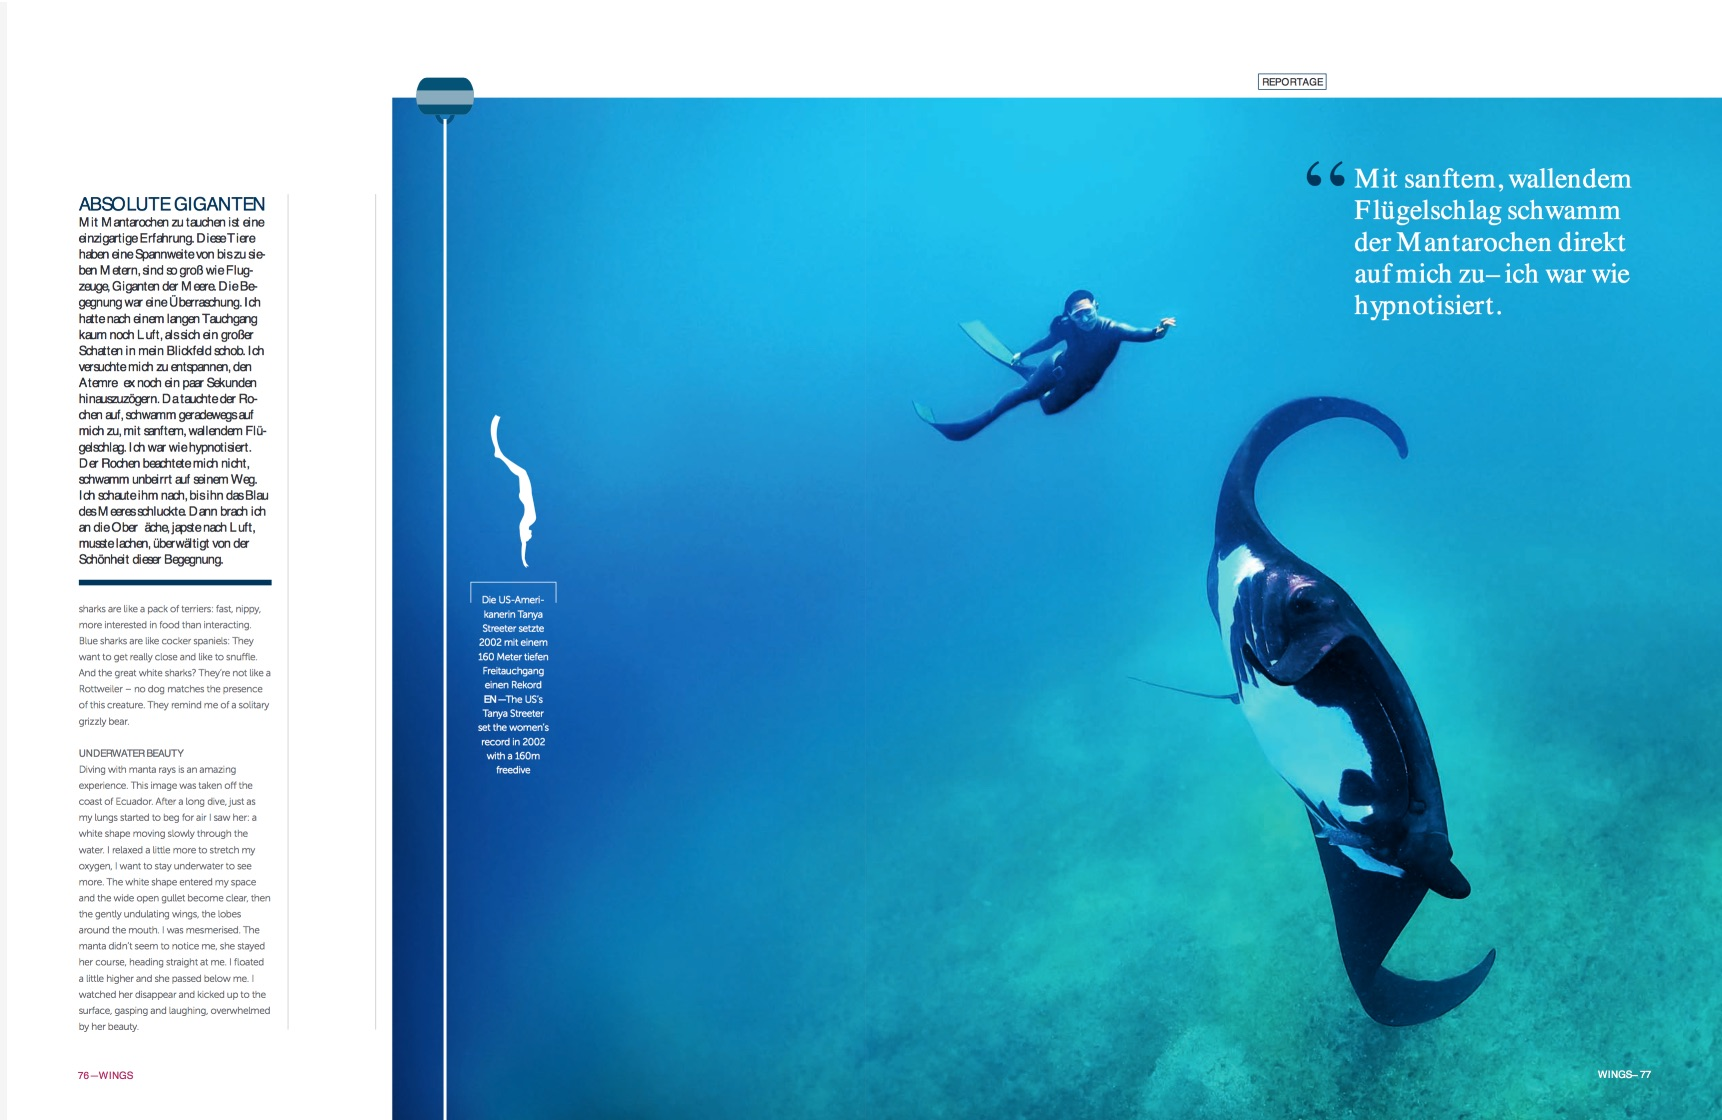 Eurowings Inflight Magazine  / Cover story                      by Reinhard Keck  July 2017  'It was at the freediving world championship in 2011. I'd trained so hard. I'd taken six weeks out of my other work and lived in Dahab, Egypt, just training in the Red Sea. At the event in Greece I suddenly felt I was in the wrong place. I said to myself: Why did I need to try to be better than all these other divers? I was hanging there on the rope, getting ready for my dive, just looking down thinking: I don't need to do this anymore. Now I am diving with the most beautiful animals and my mission is conserving them...'